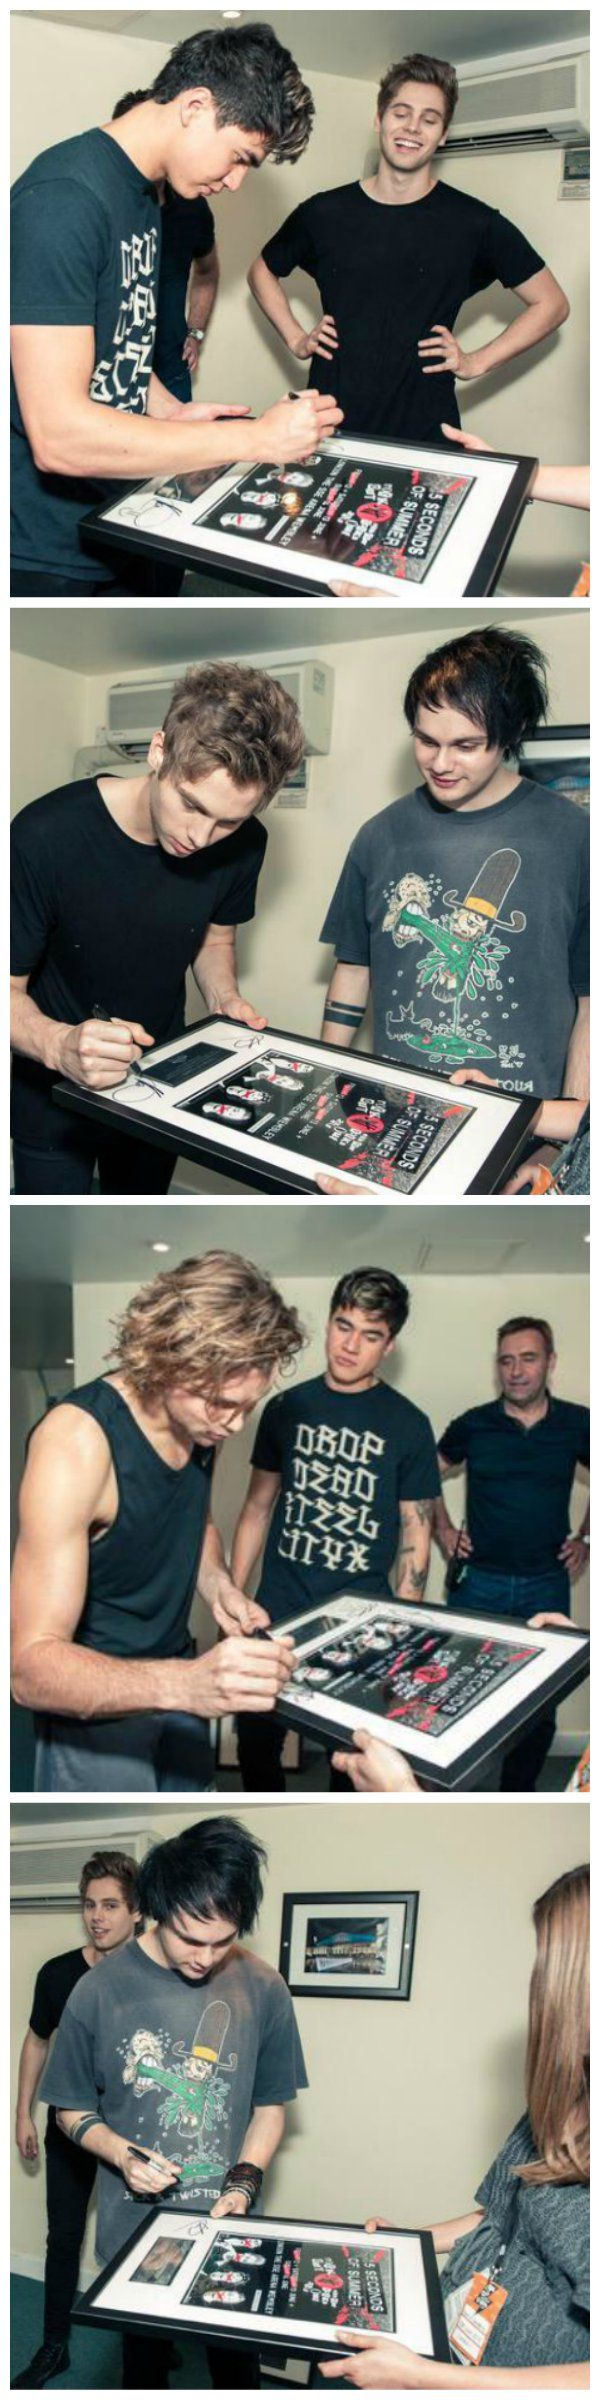 5SOS Backstage Wembley Arena #ROWYSO 6/12/15